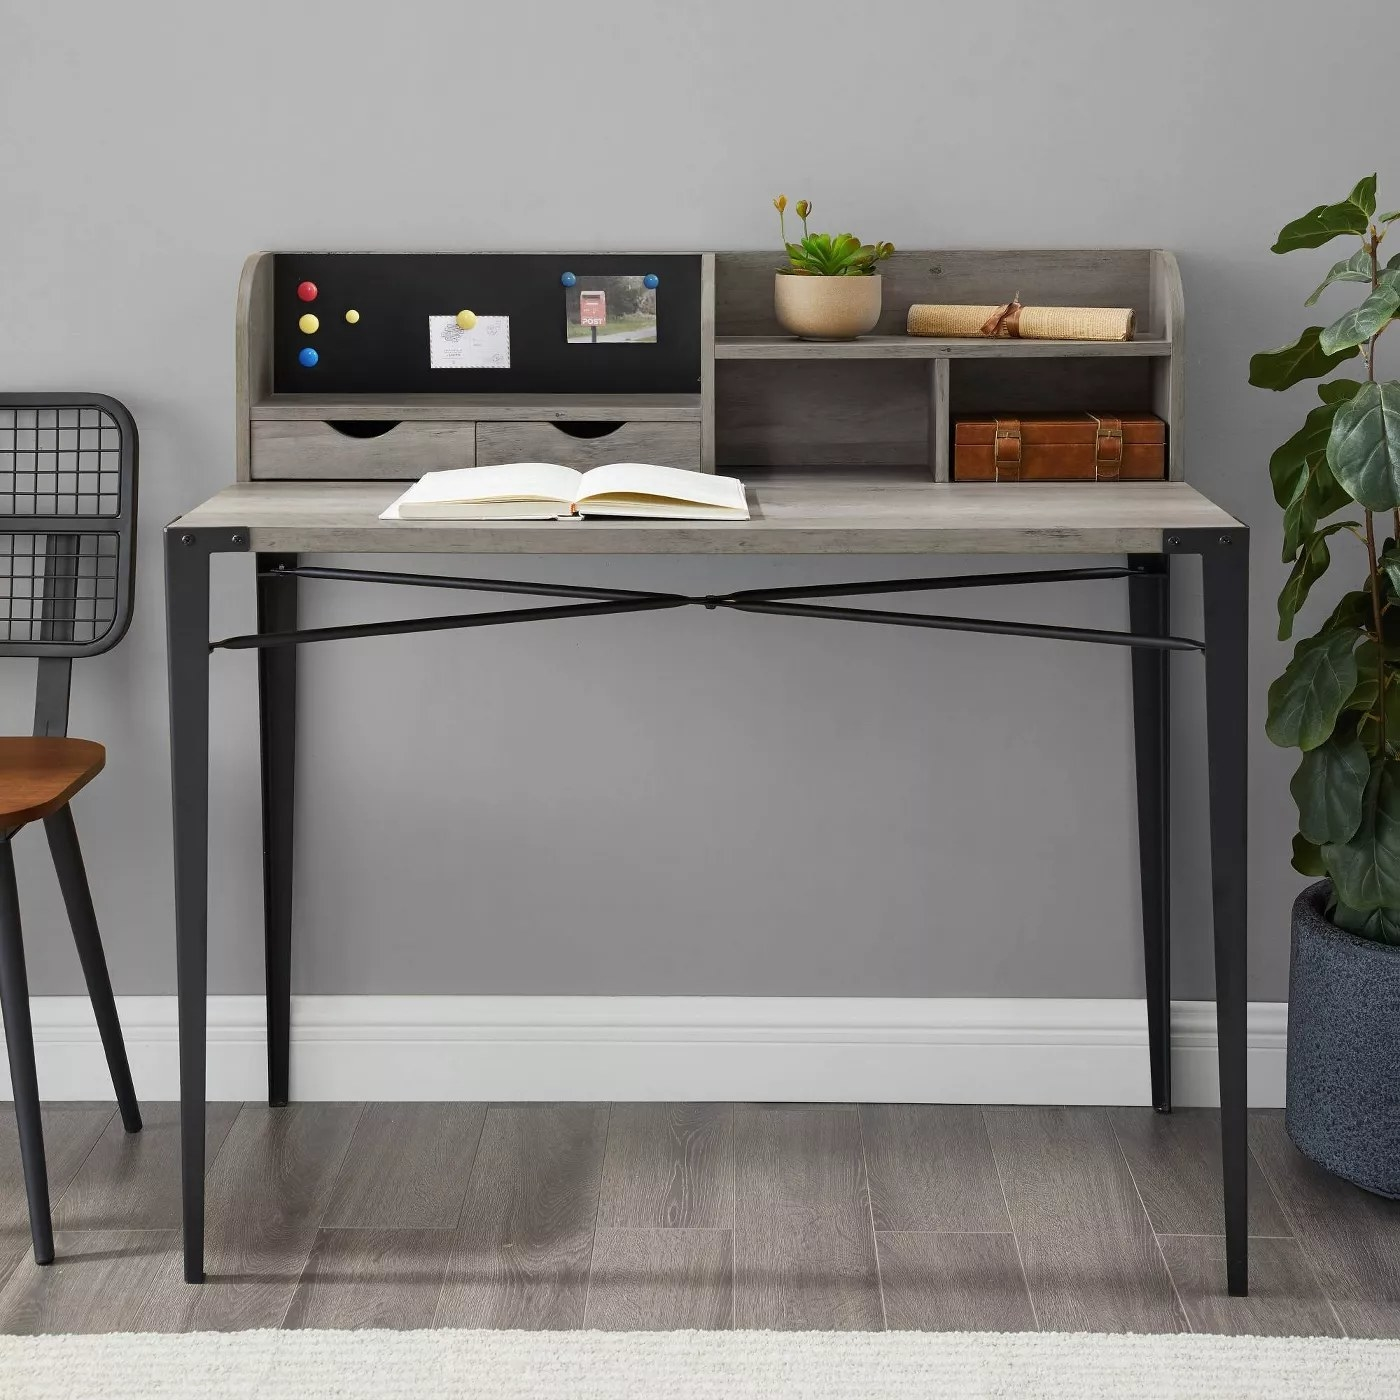 The industrial desk in gray